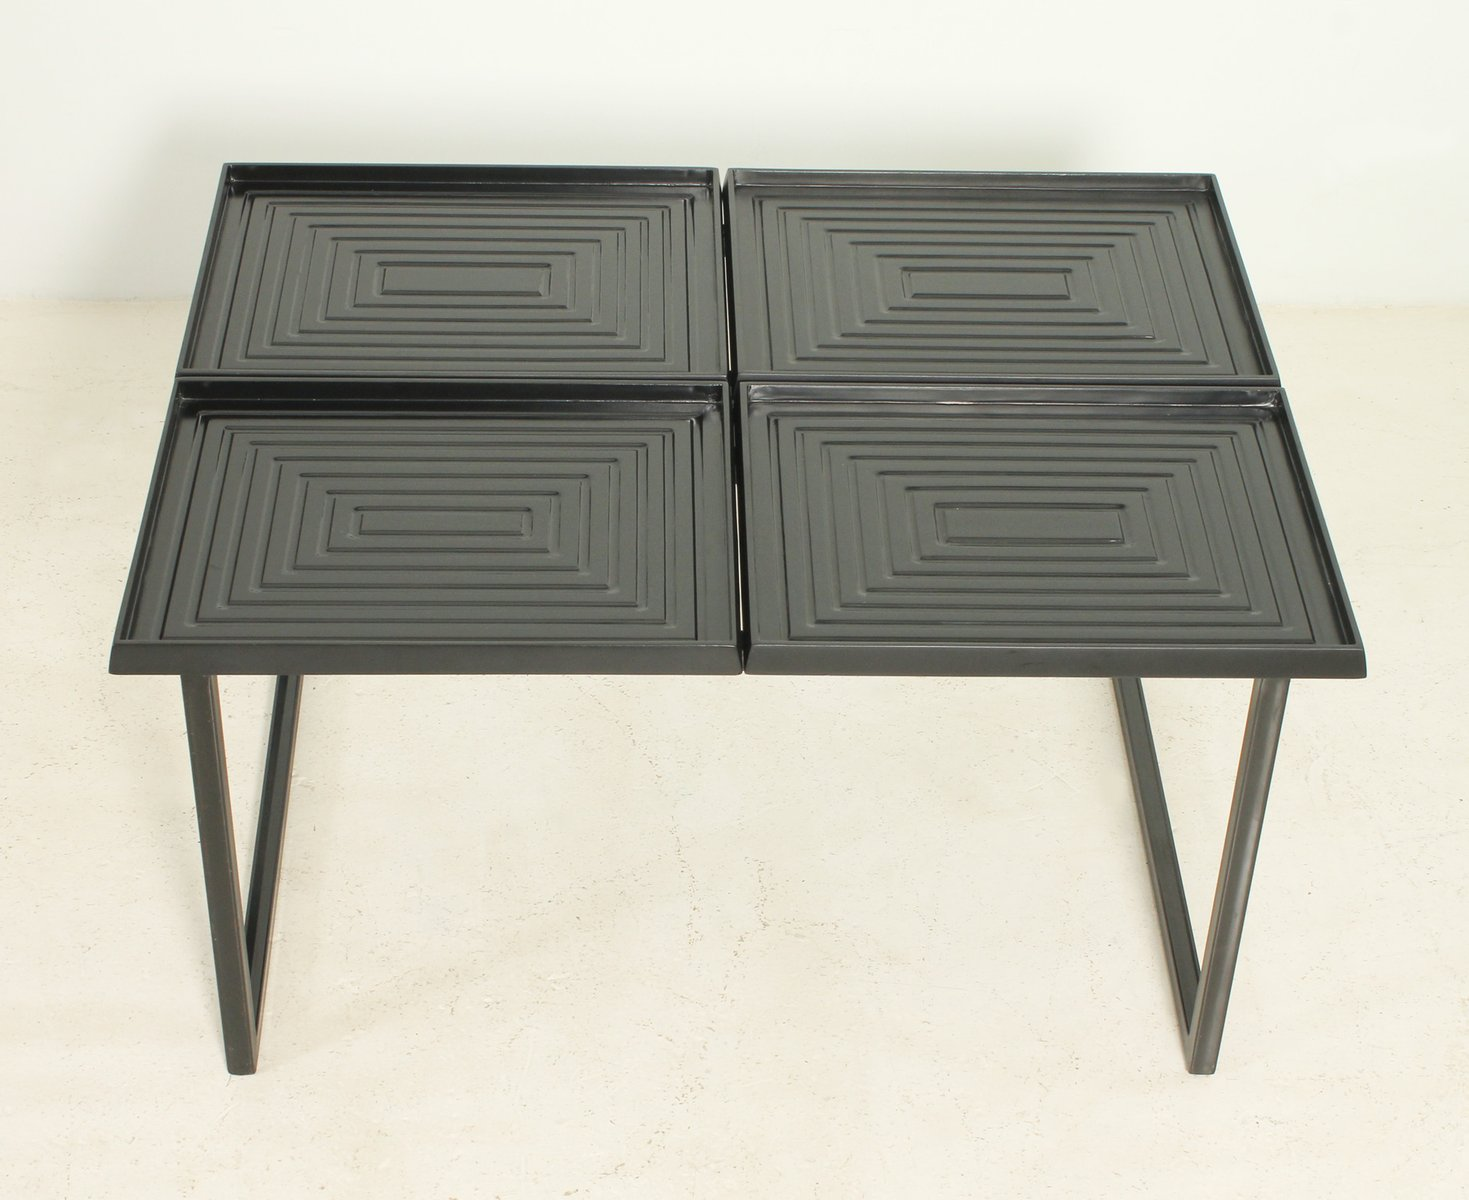 Geometric Coffee Table With Removable Trays 1980s For